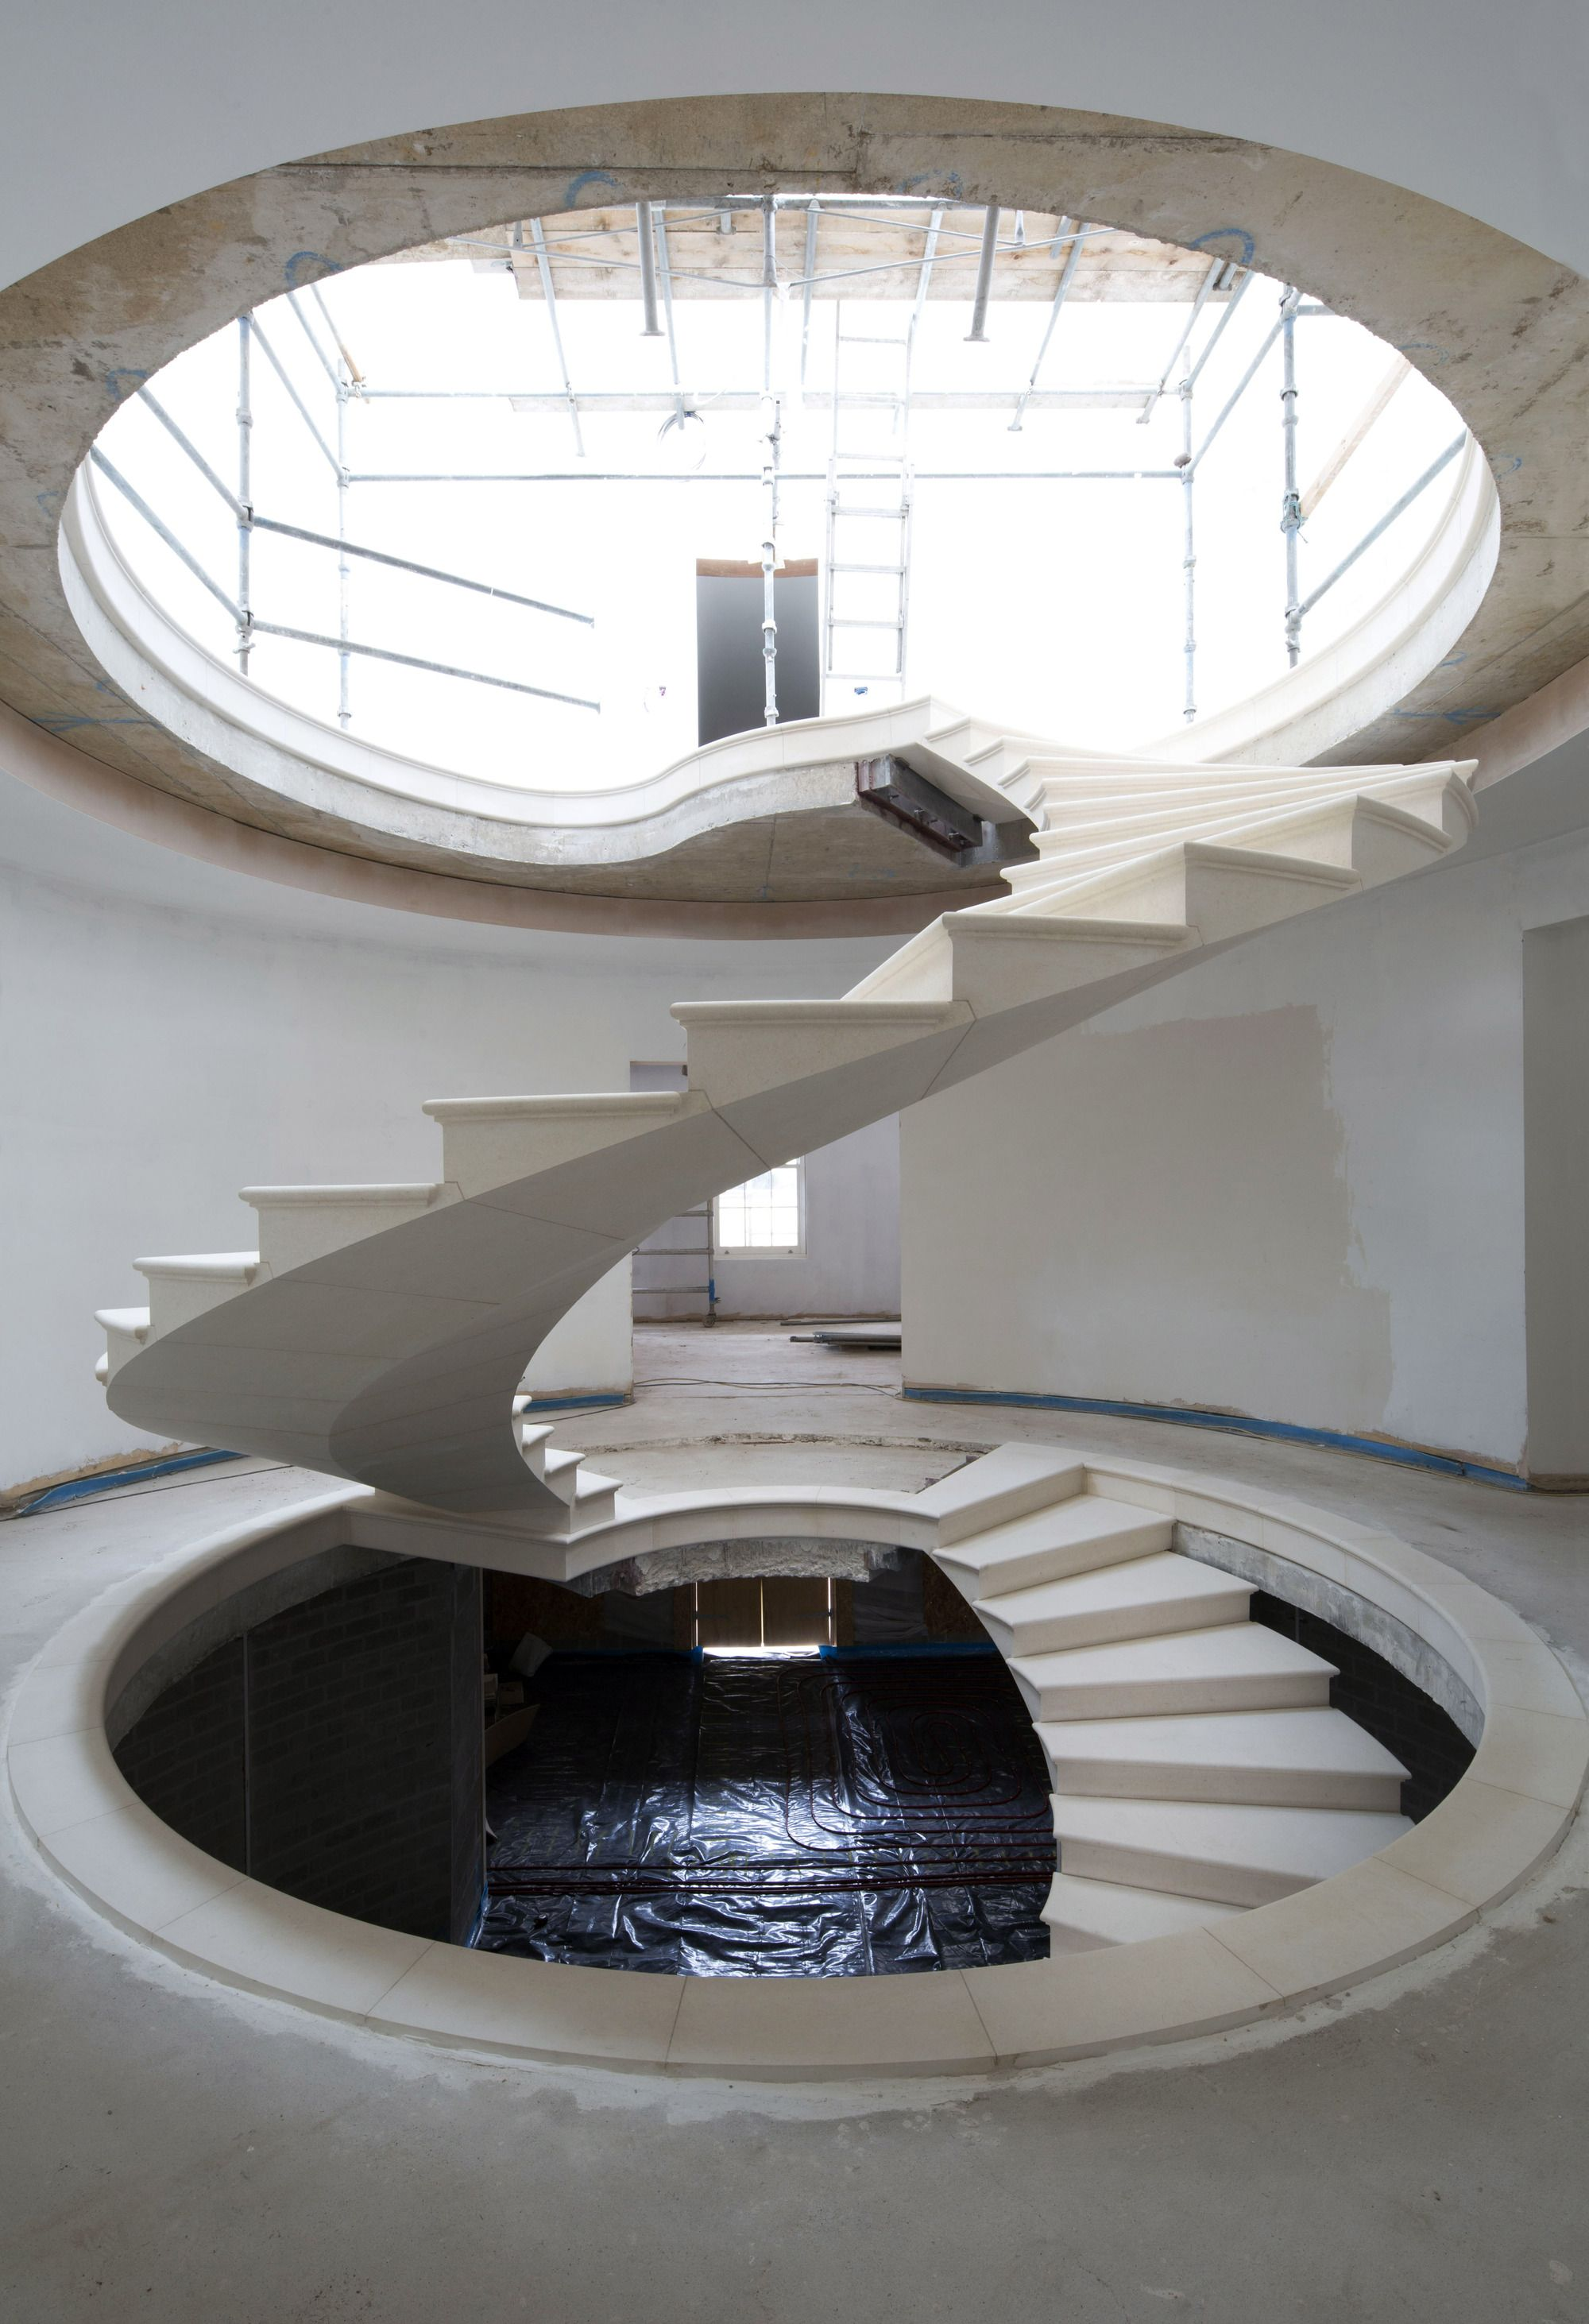 Gallery of See The Engineering Behind This Floating, AwardWinning Stone Helical Stair  14 is part of architecture Wood Construction Spaces - Image 14 of 17 from gallery of See The Engineering Behind This Floating, AwardWinning Stone Helical Stair  Photograph by Agnese Sanvito